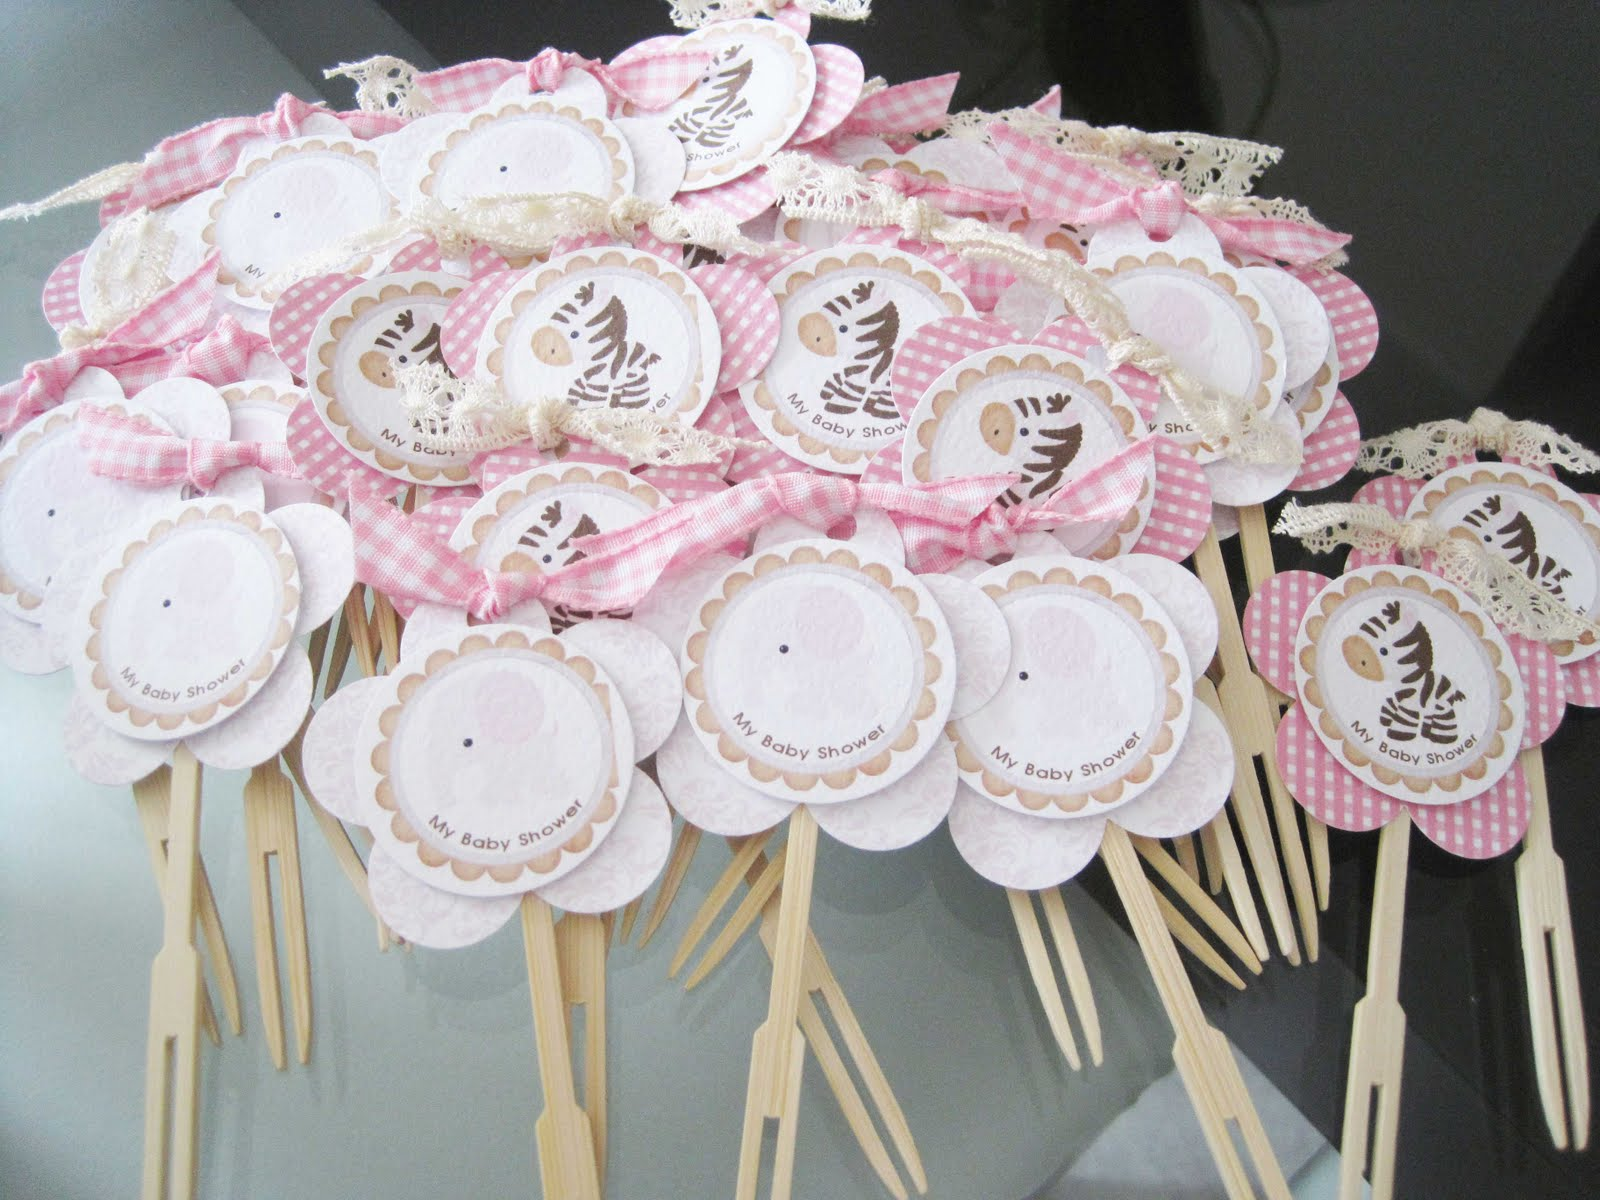 Moms Angels Decoracion Mesa Y Recordatorios Baby Shower Ni A